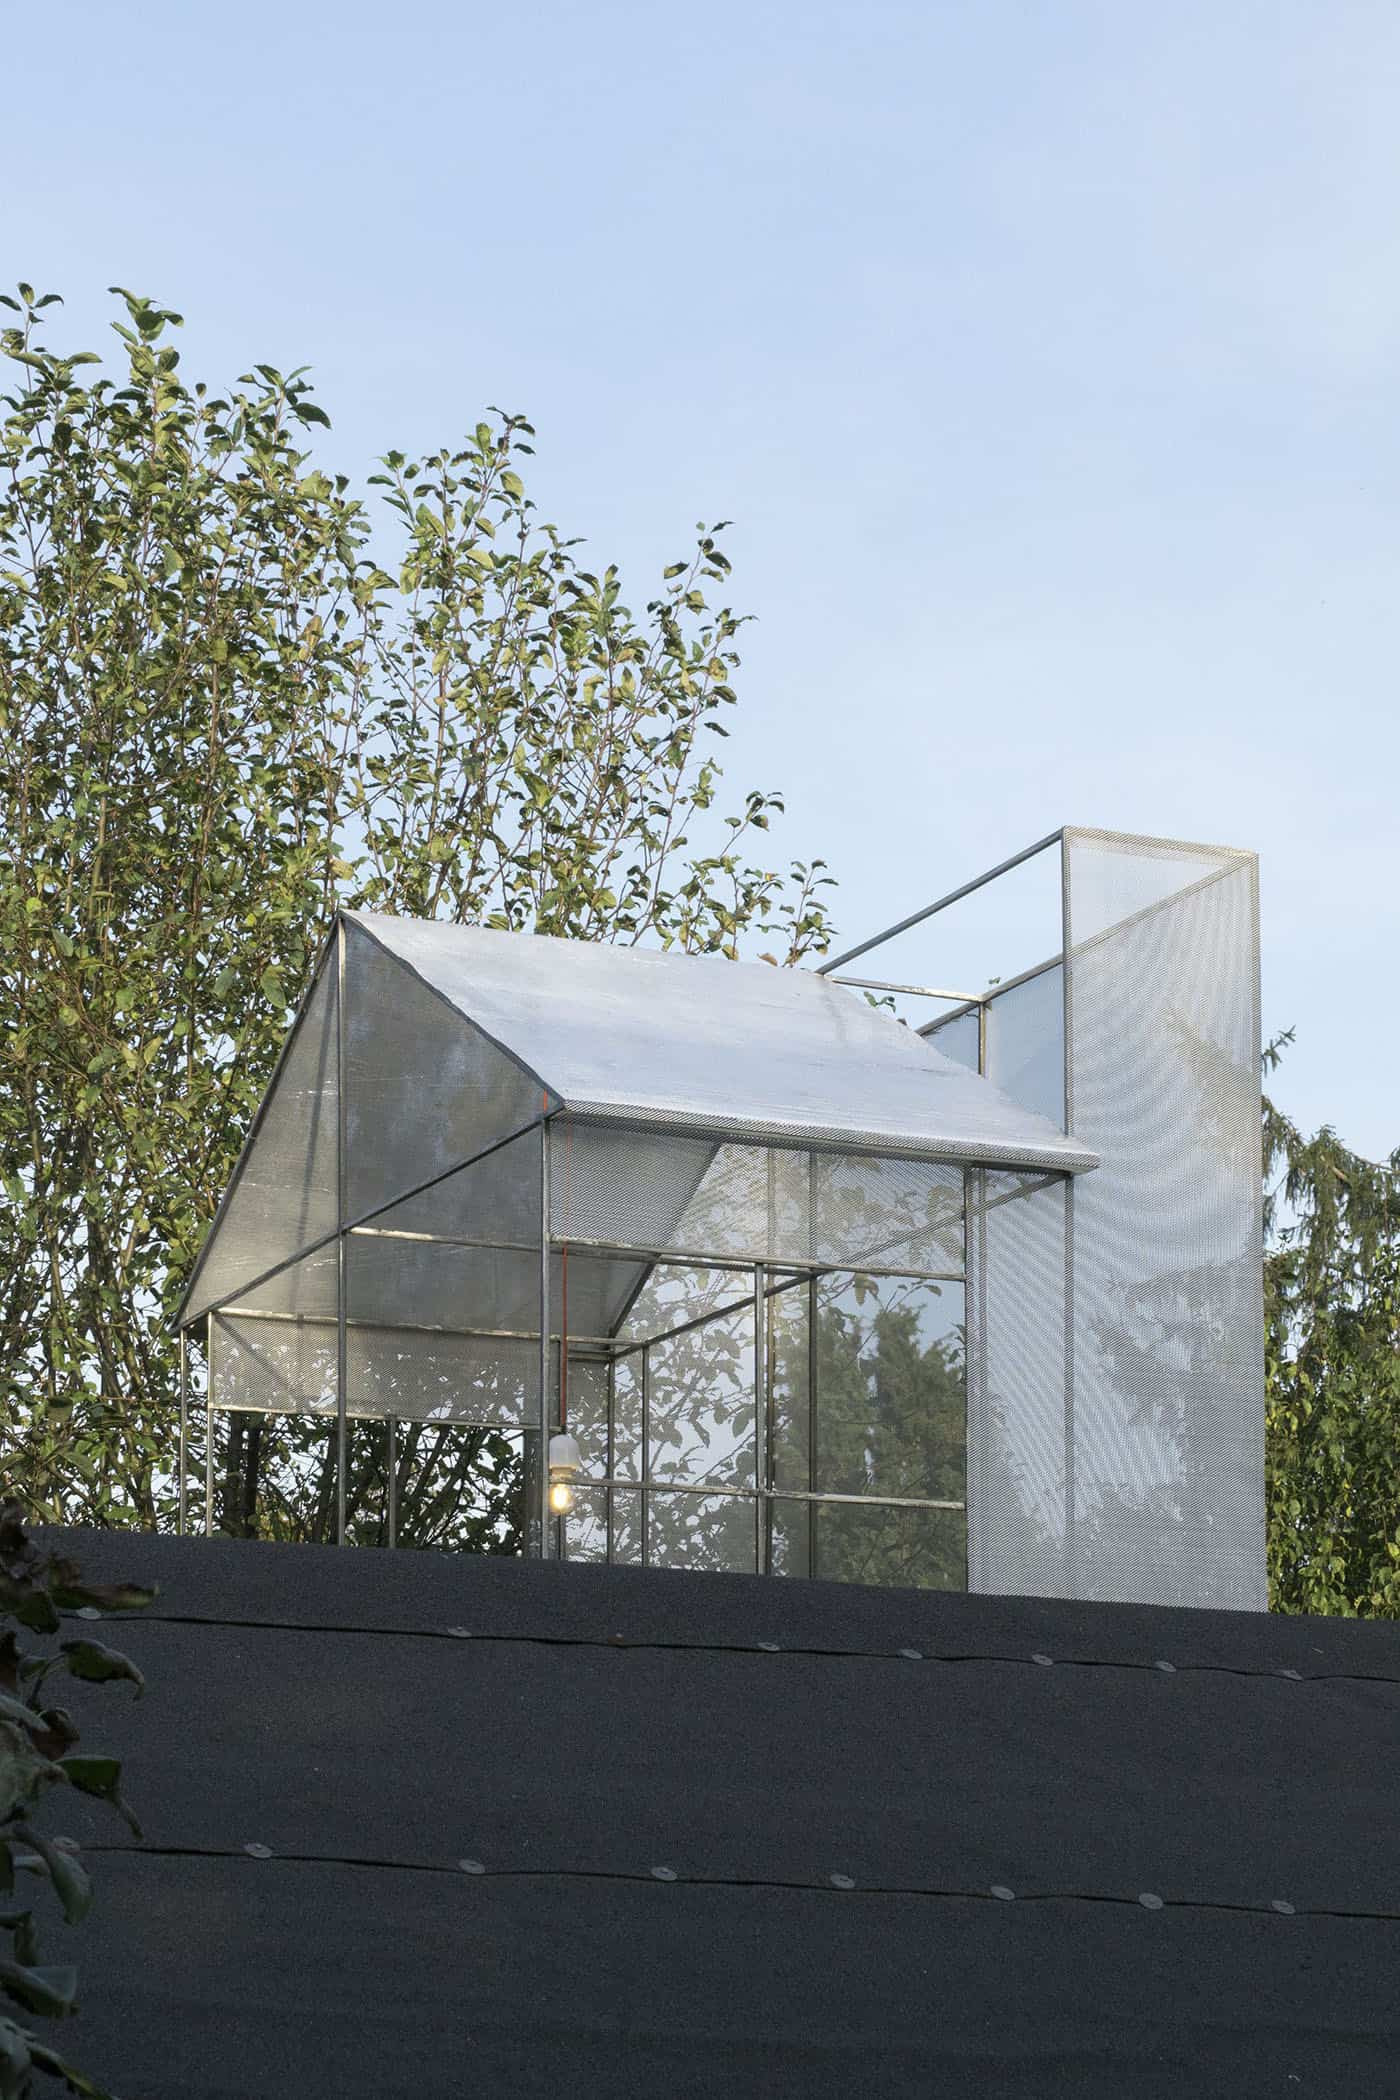 Jan Domicz, BnB, 2017, Gardening allotment. Sculpture placed on top of R.O.D. Gallery is a 1:1 model of a characteristic lantern which lets the light into highly densified tenant houses at Warsaw Old Town. Piece is built out of materials typical for fans, air conditioners and other installations visible on an office building rooftops.